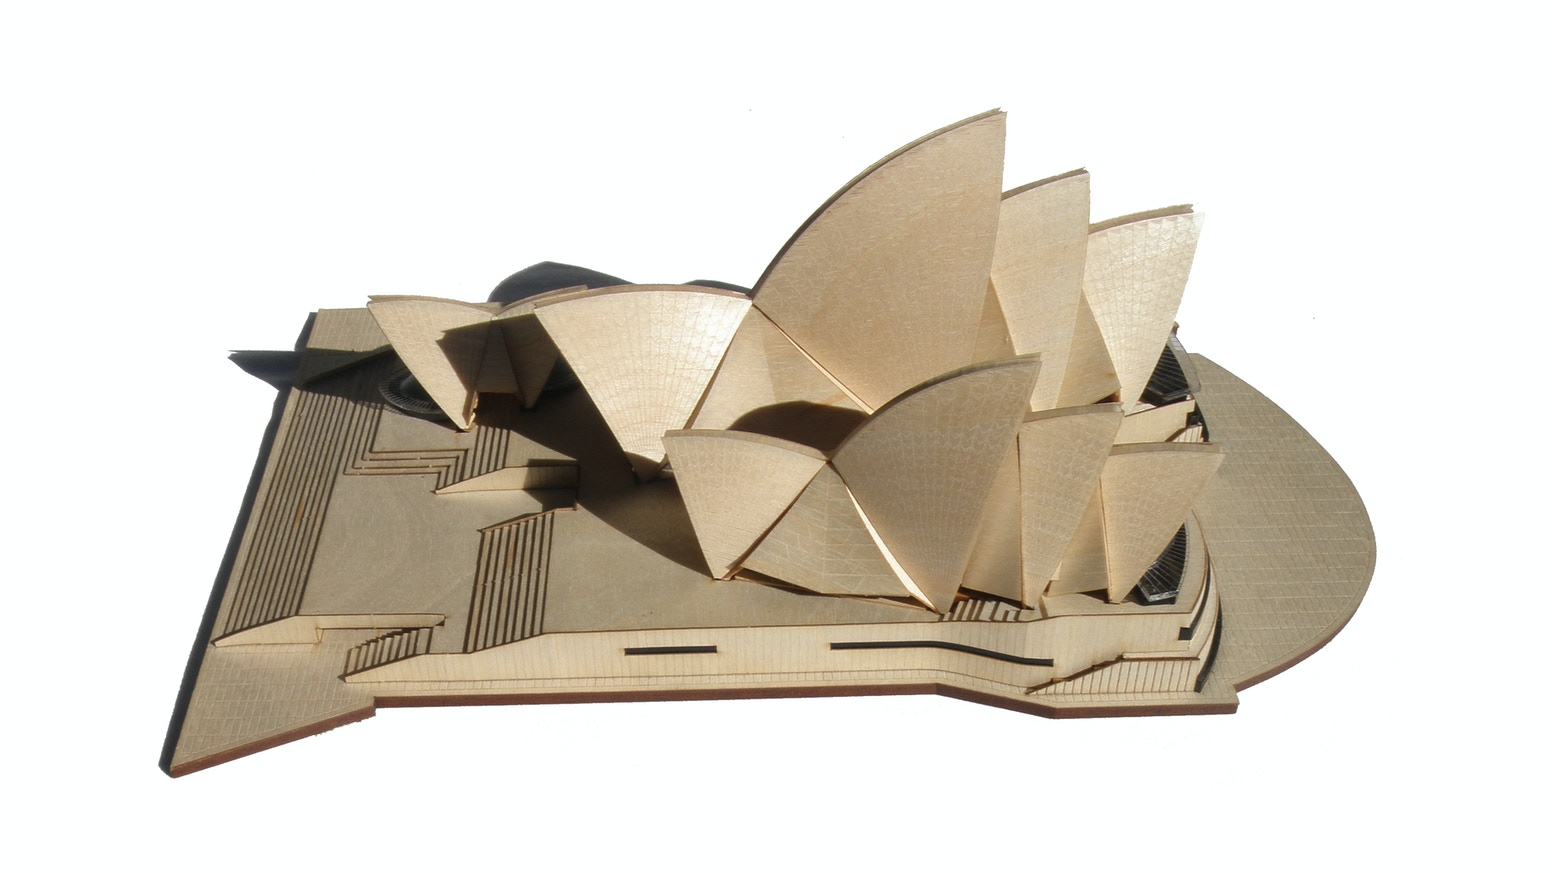 a beautifully crafted timber model kit of the sydney opera house build your own iconic - Build Your Own Model House